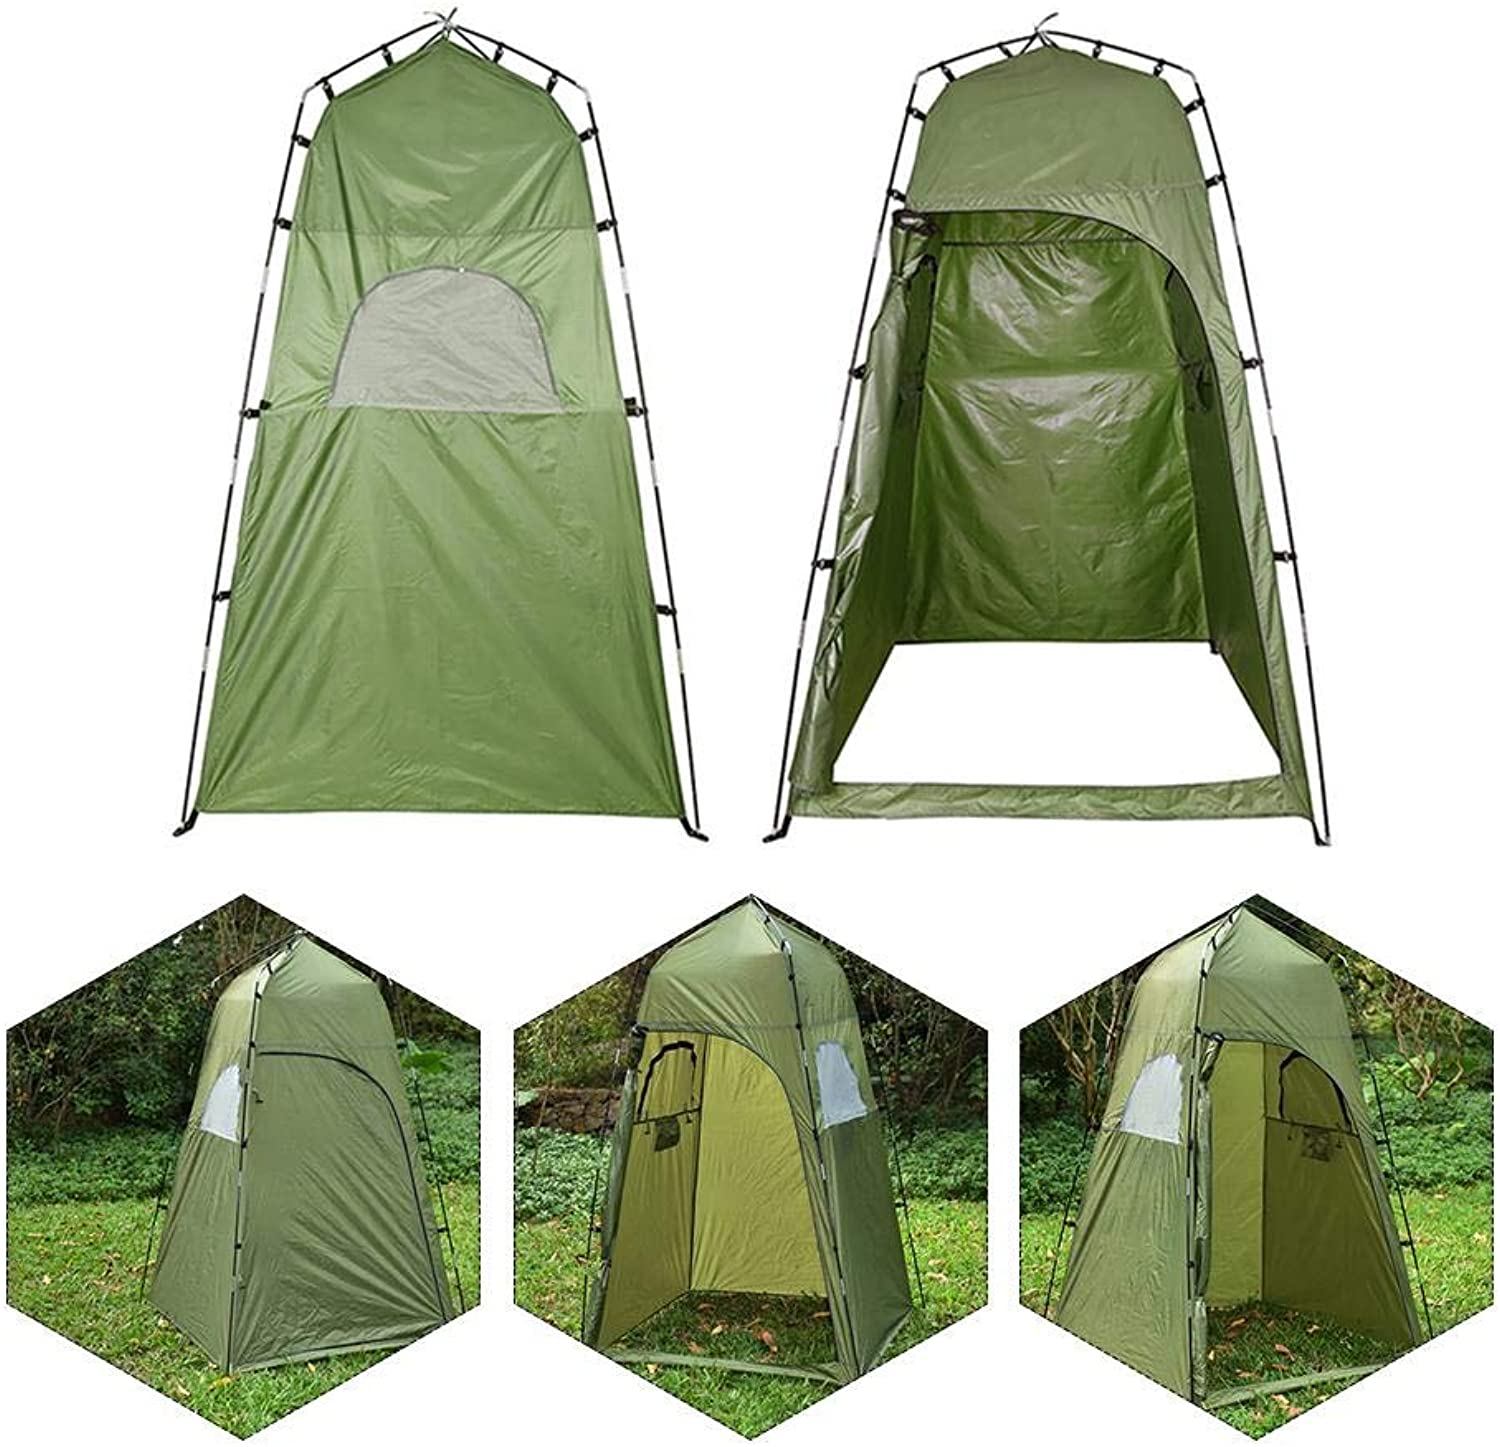 Pop-Up Toilet Tent for Camping,Waterproof Family Beach Dome Tents for Changing Dressing Fishing Shower, Storage Room,Portable UV Predection Tents with Carry Bag